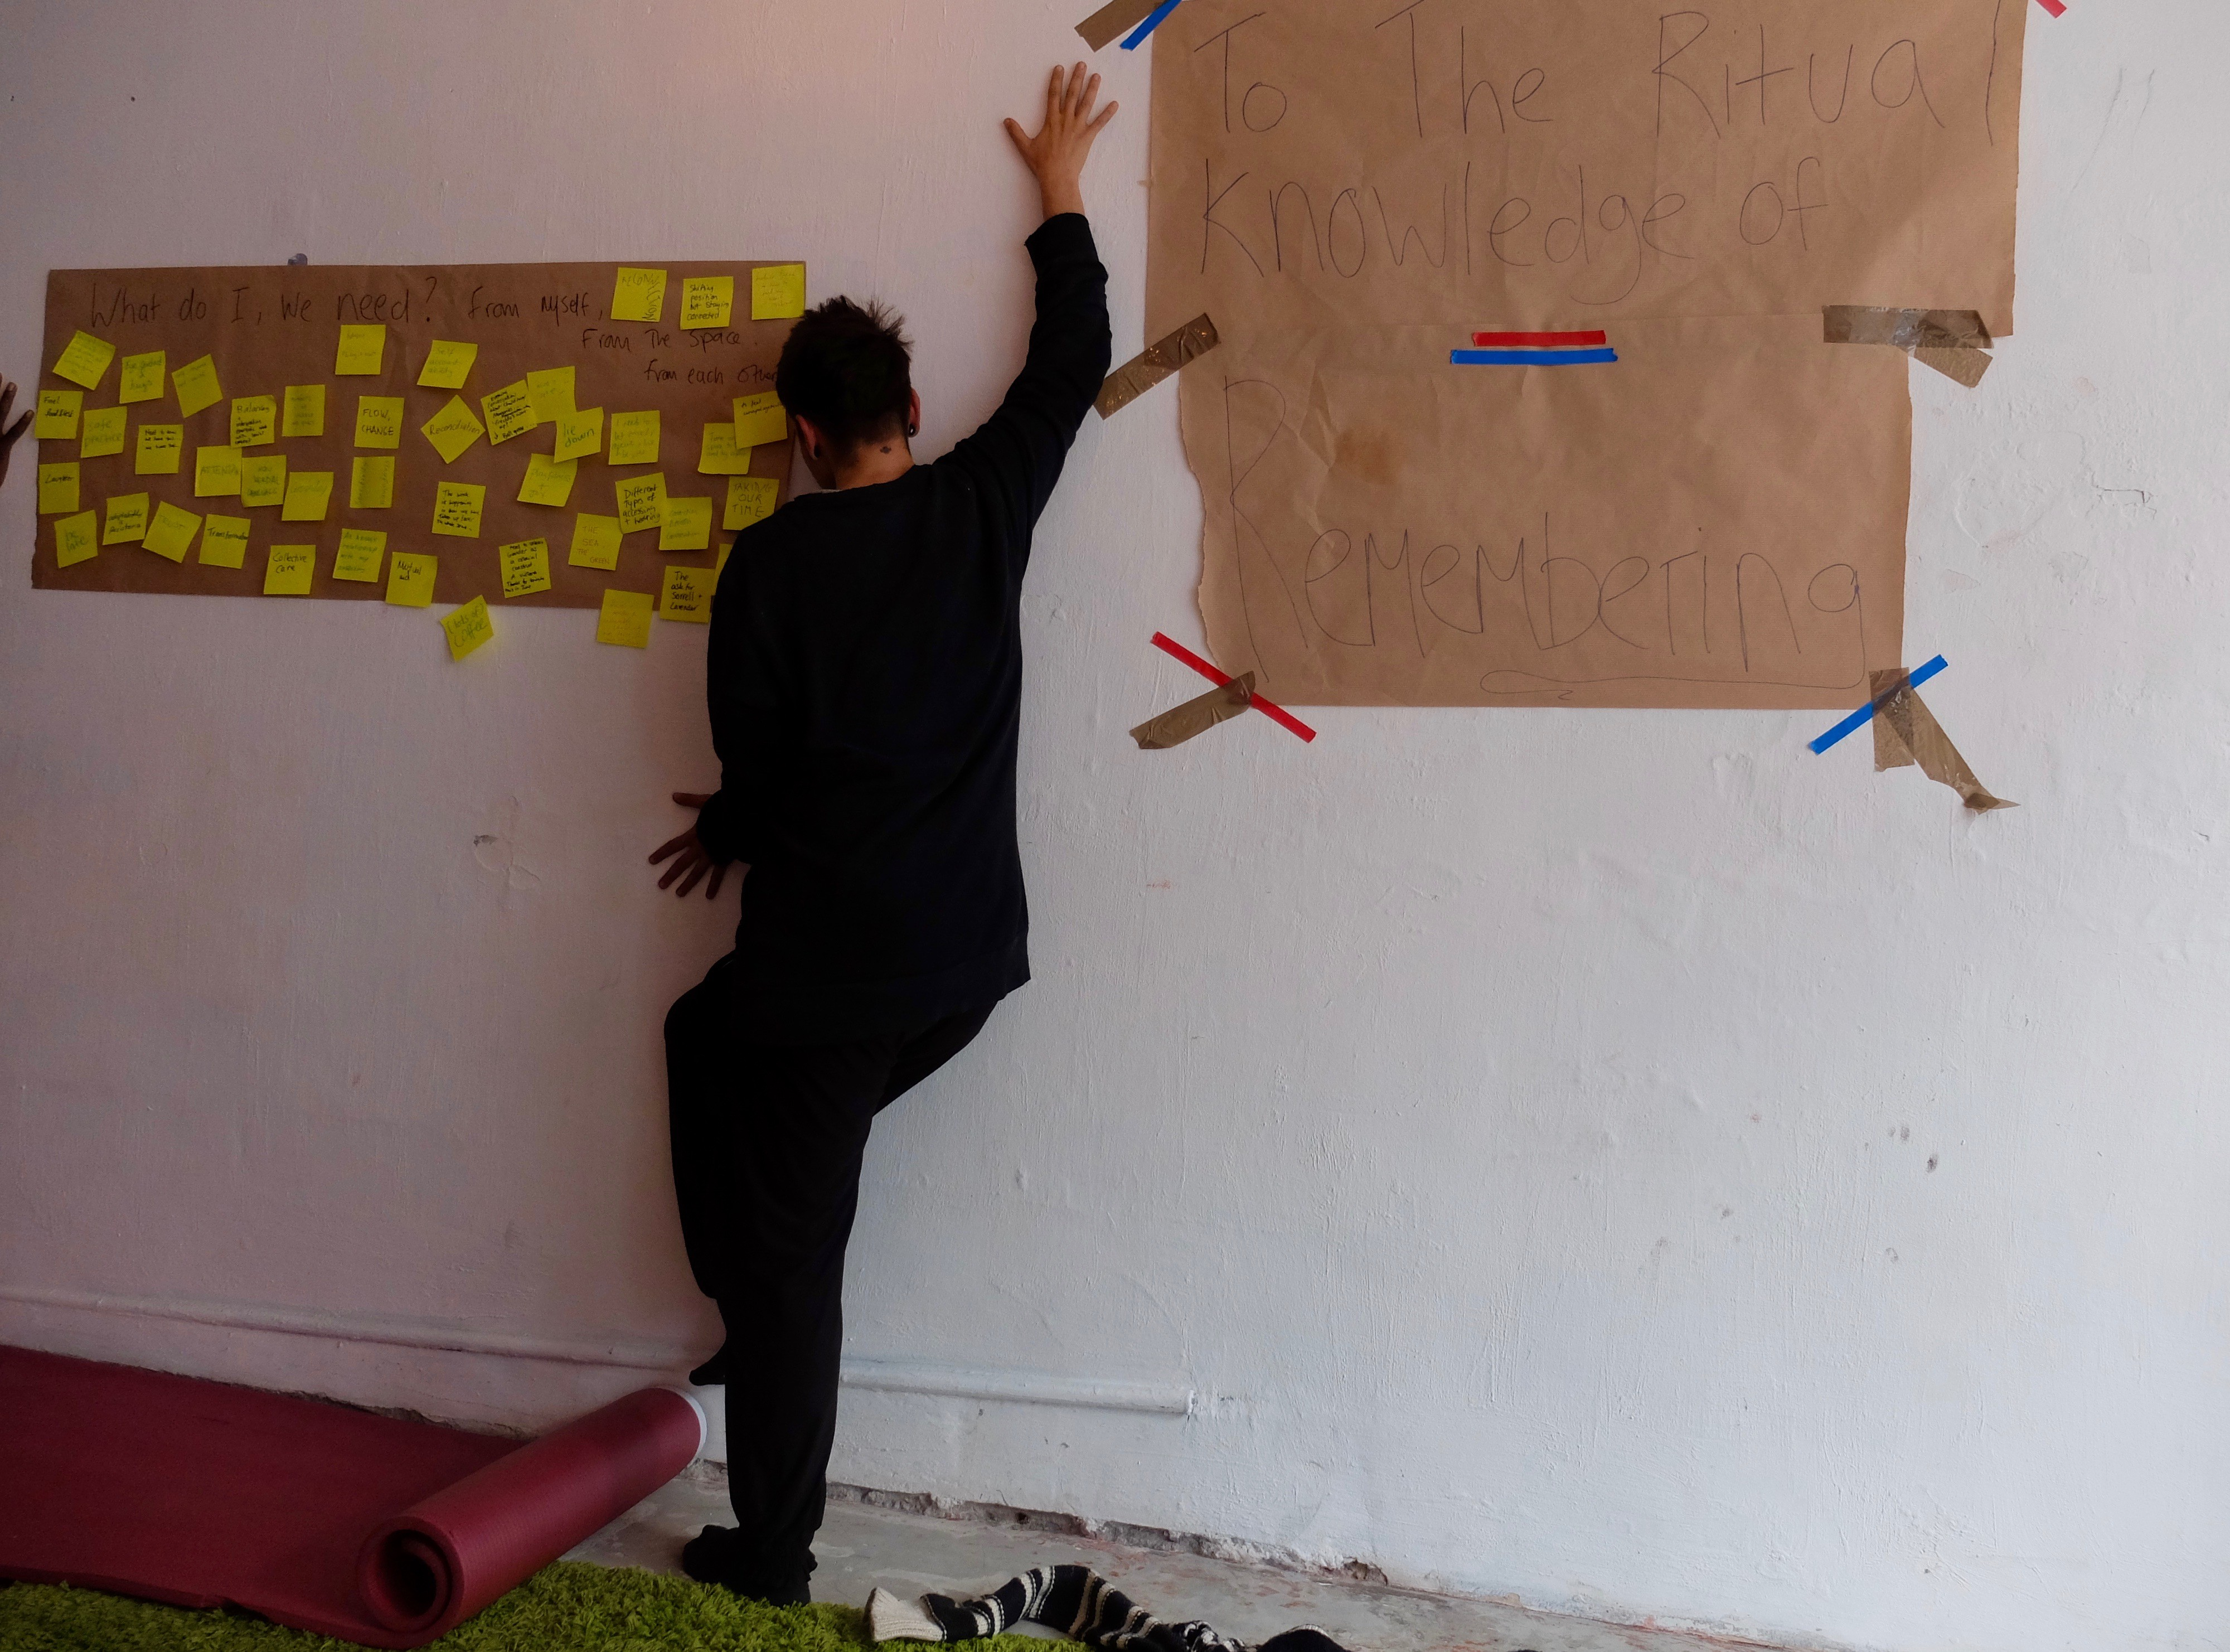 A workshop participant presses their body against a wall. Attached to the wall are various post it notes and paper sheets.